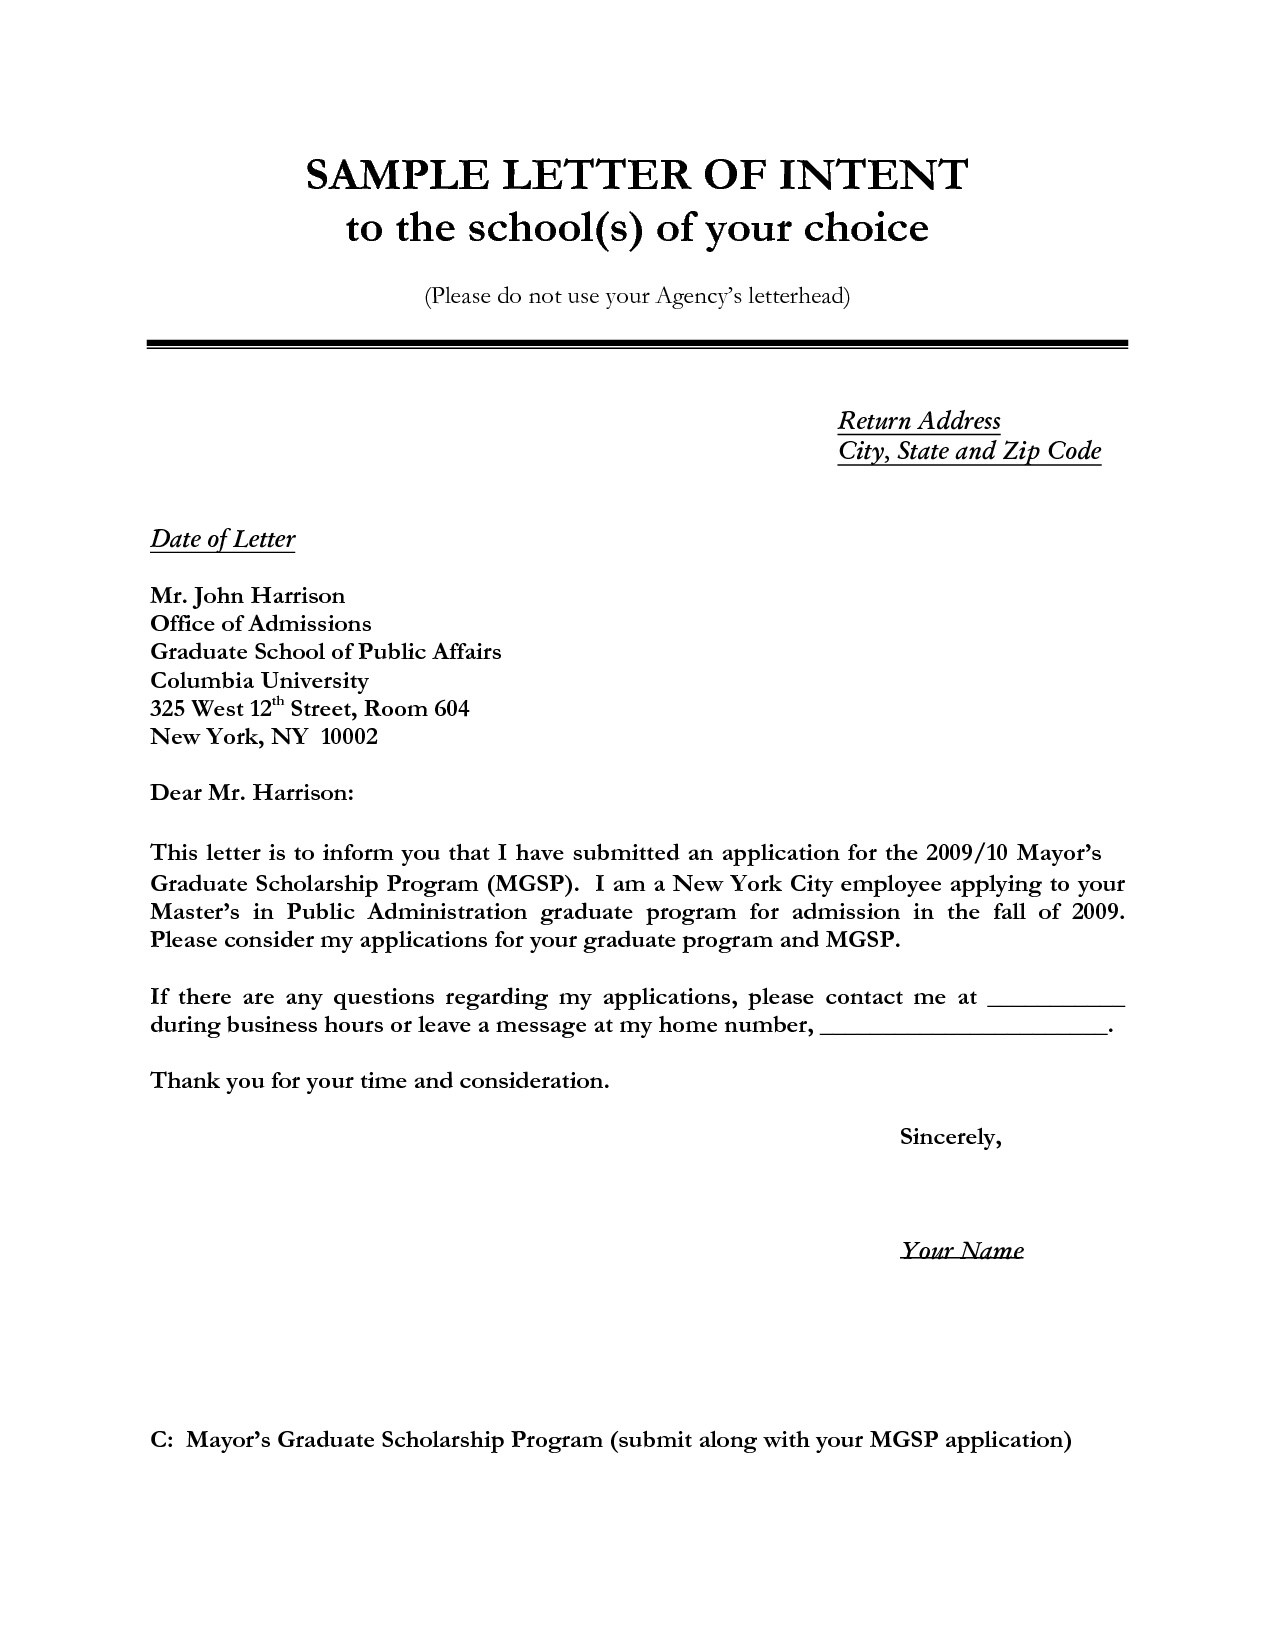 Notarized Letter Template - Letter Of Intent Sample